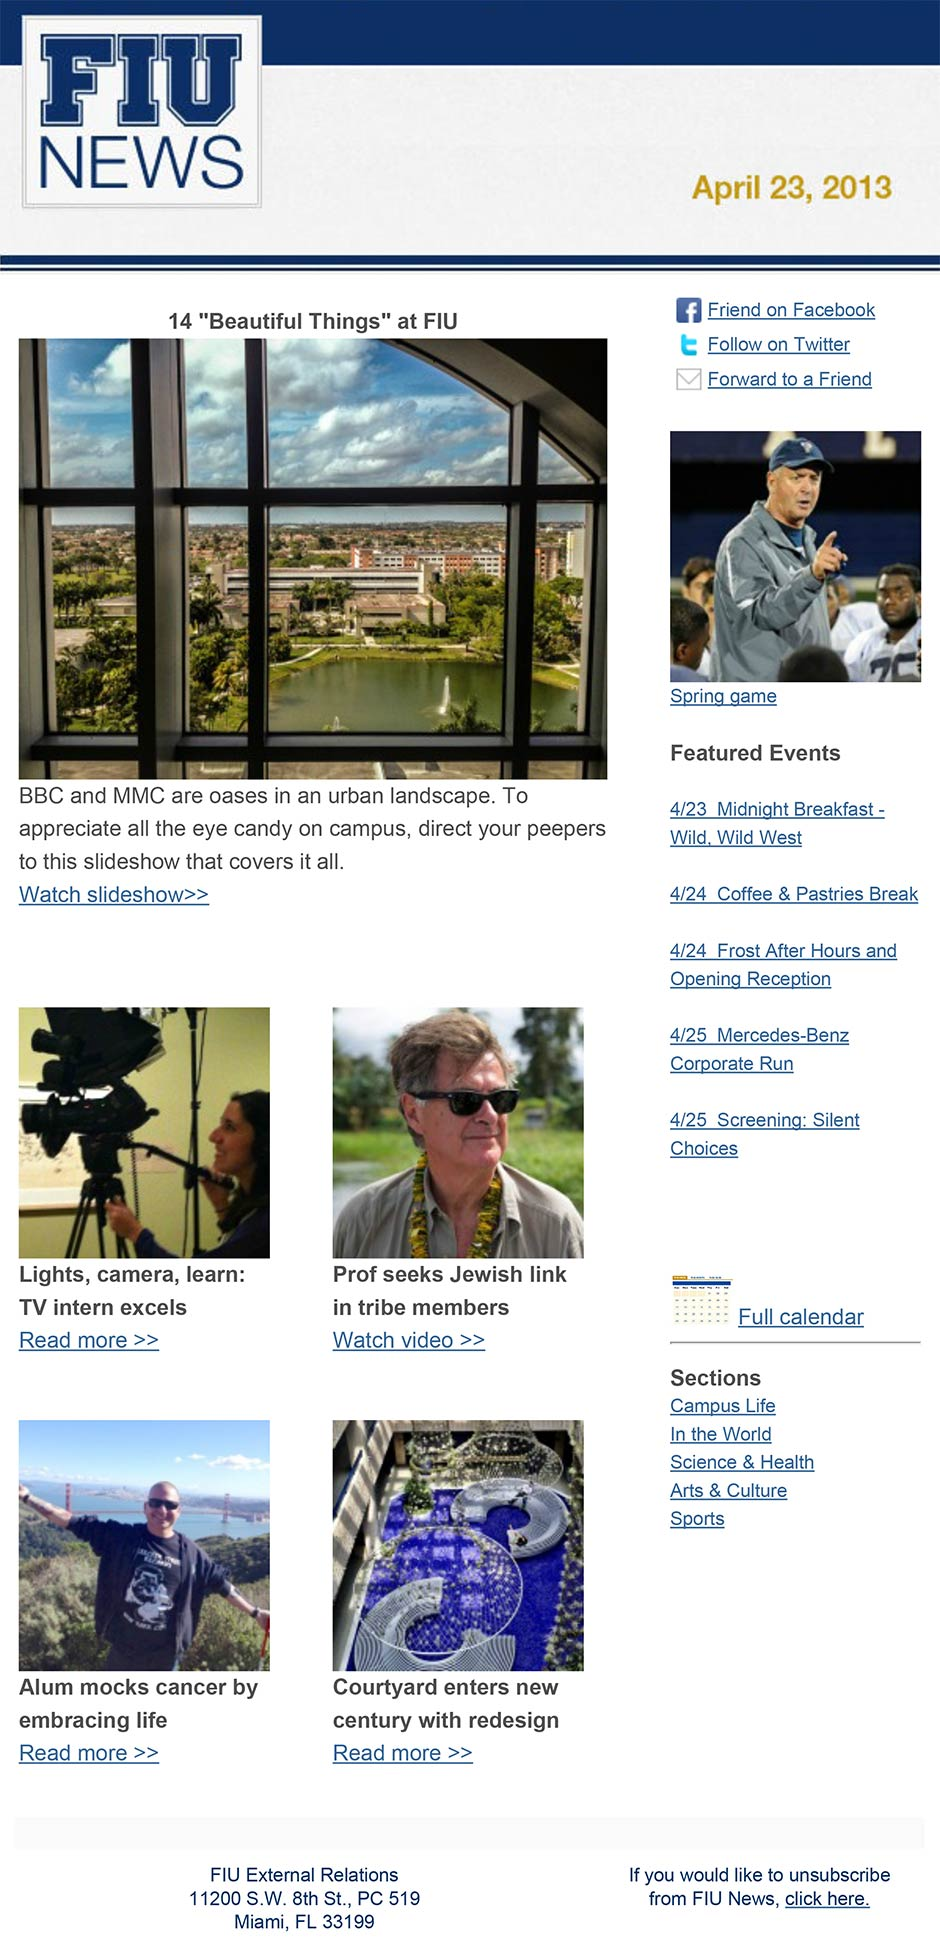 20130423_FIUNews_SkyLoungeFeatured_Campus-eye-candy_DM's-new-look_940